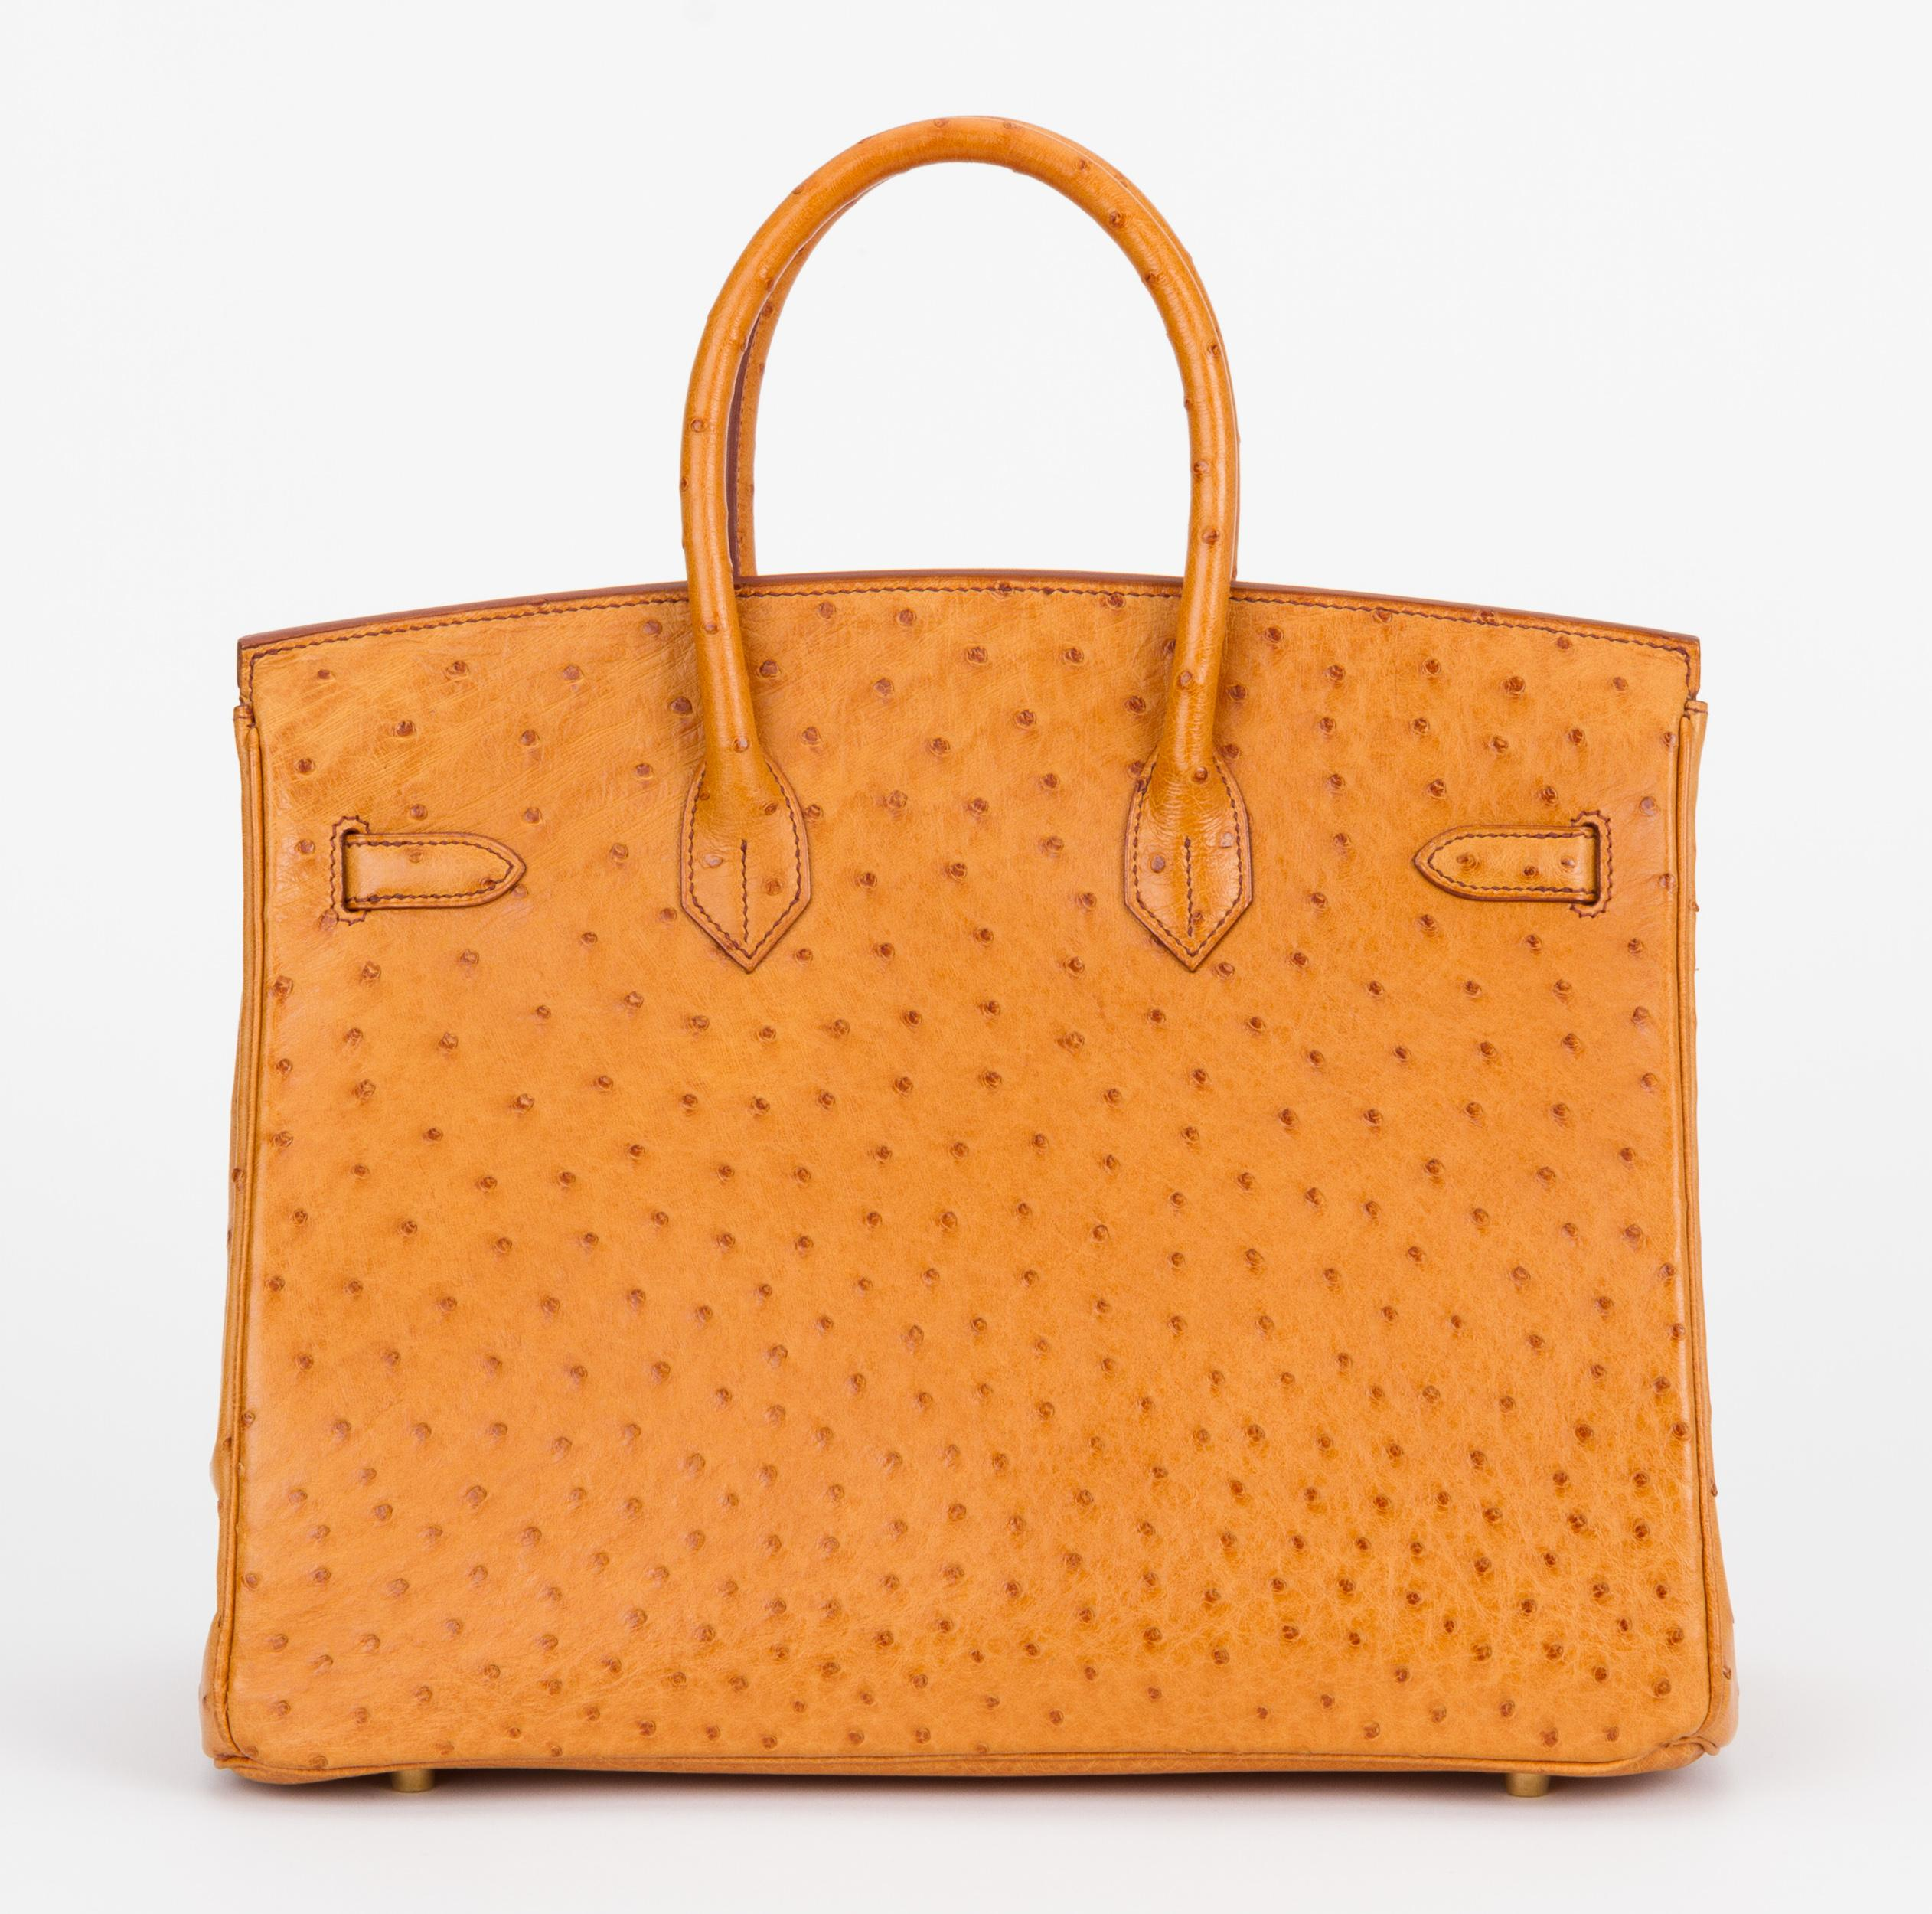 0c034b8d02e5 Rare Hermes Birkin 35 Ostrich Sable Gold Bag For Sale at 1stdibs